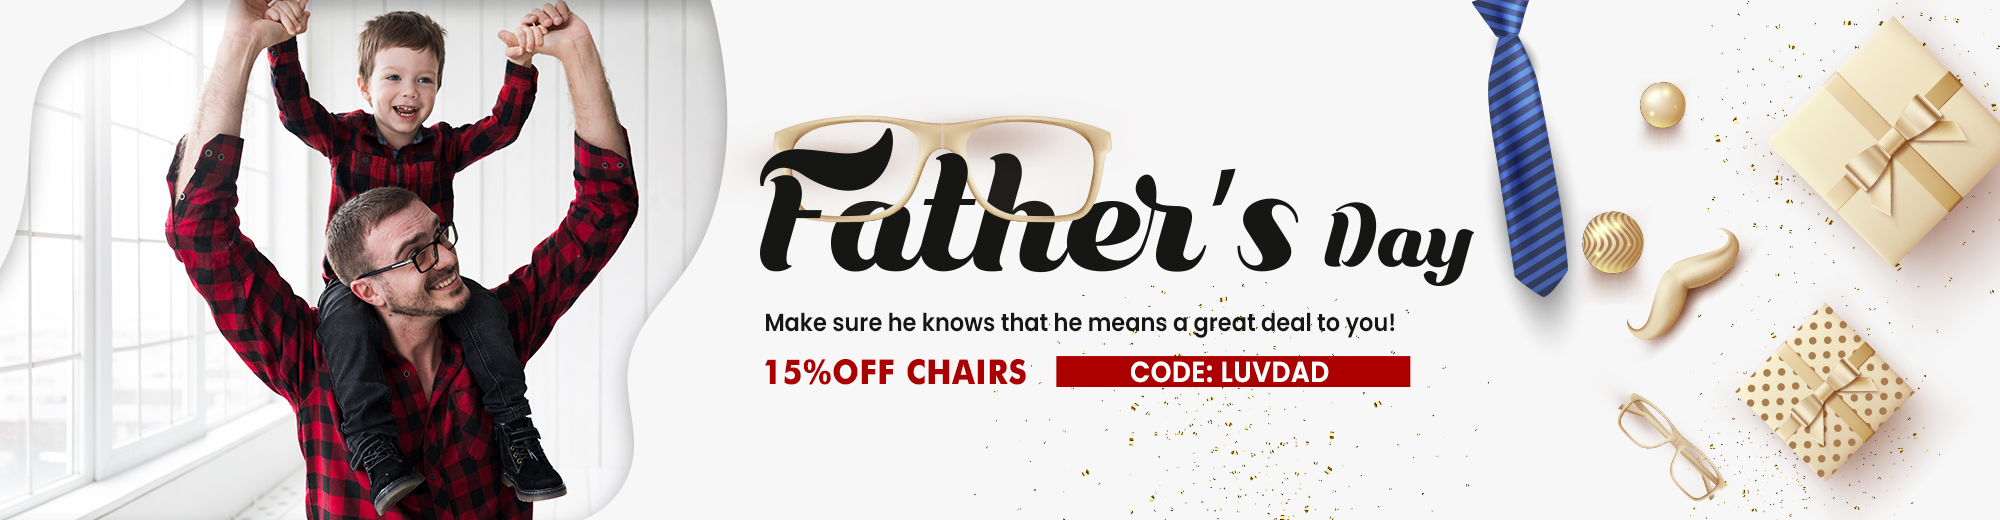 SEO, blow out, bestseller, father's day